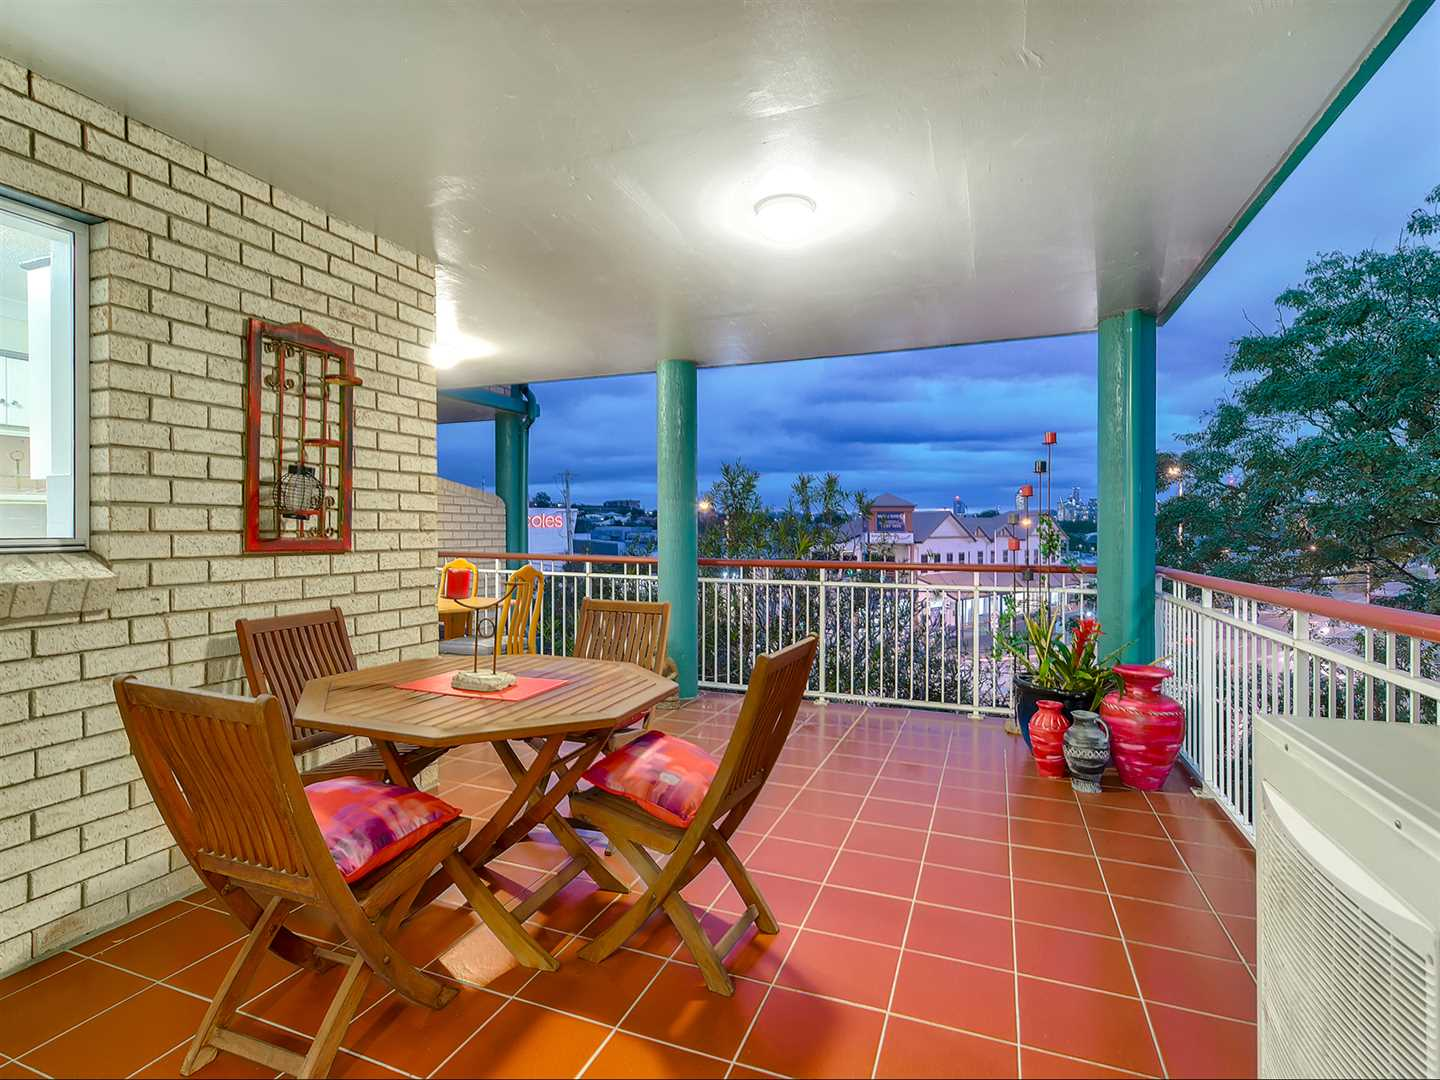 Outstanding location with direct city views